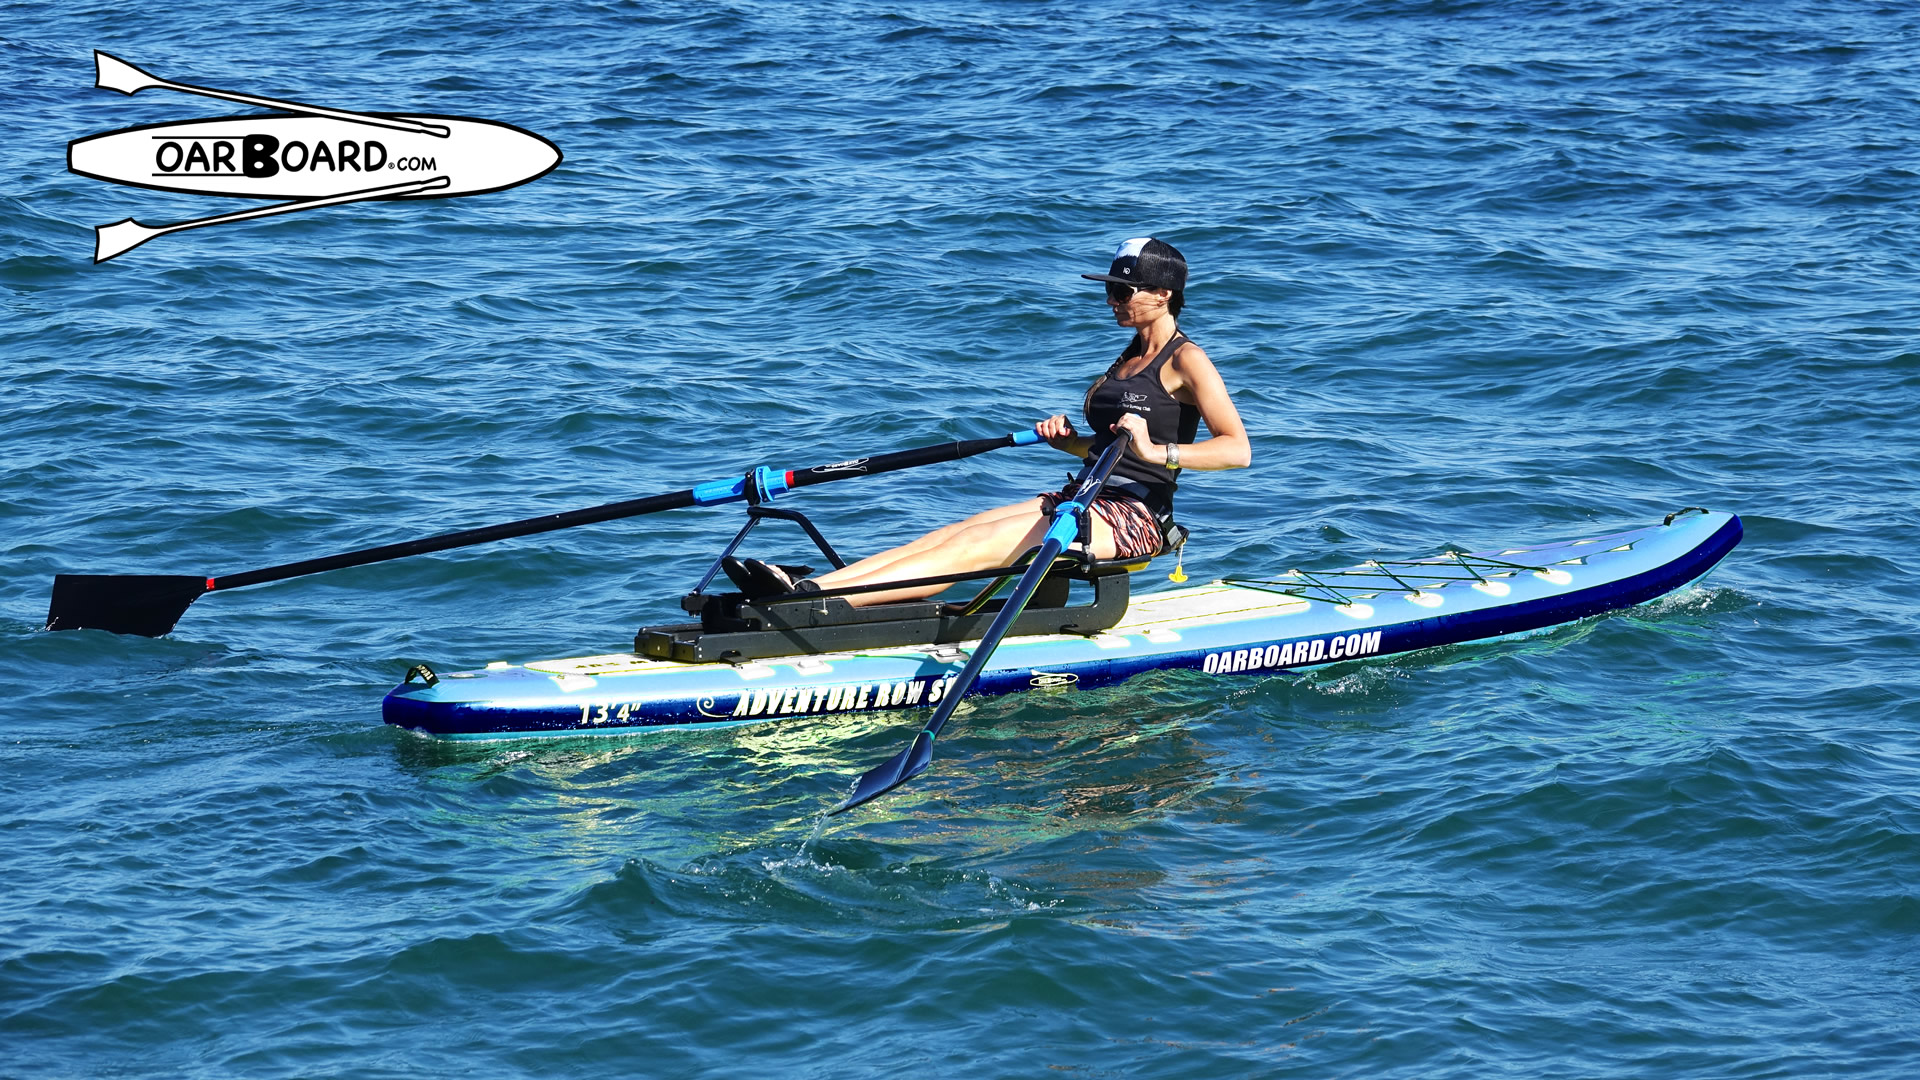 Oar Board Rower and SUP Combo in New Blue